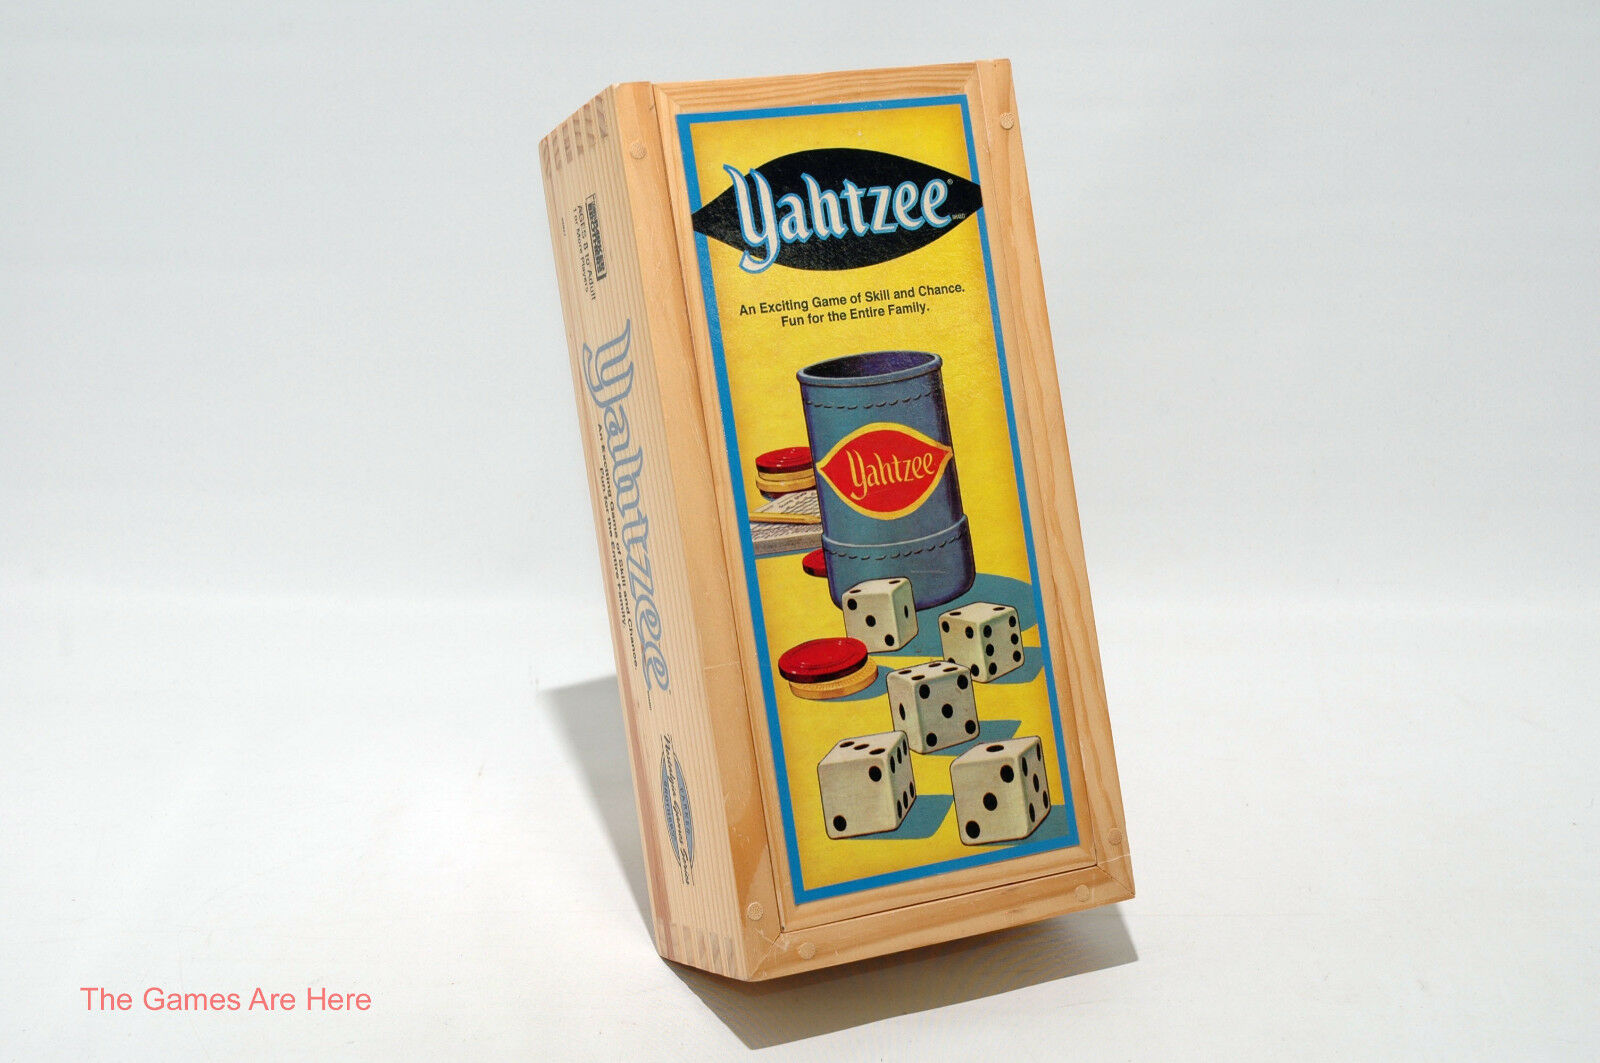 Yahtzee Nostalgia Games Series in Wooden Box Parker Bredhers 2004 COMPLETE